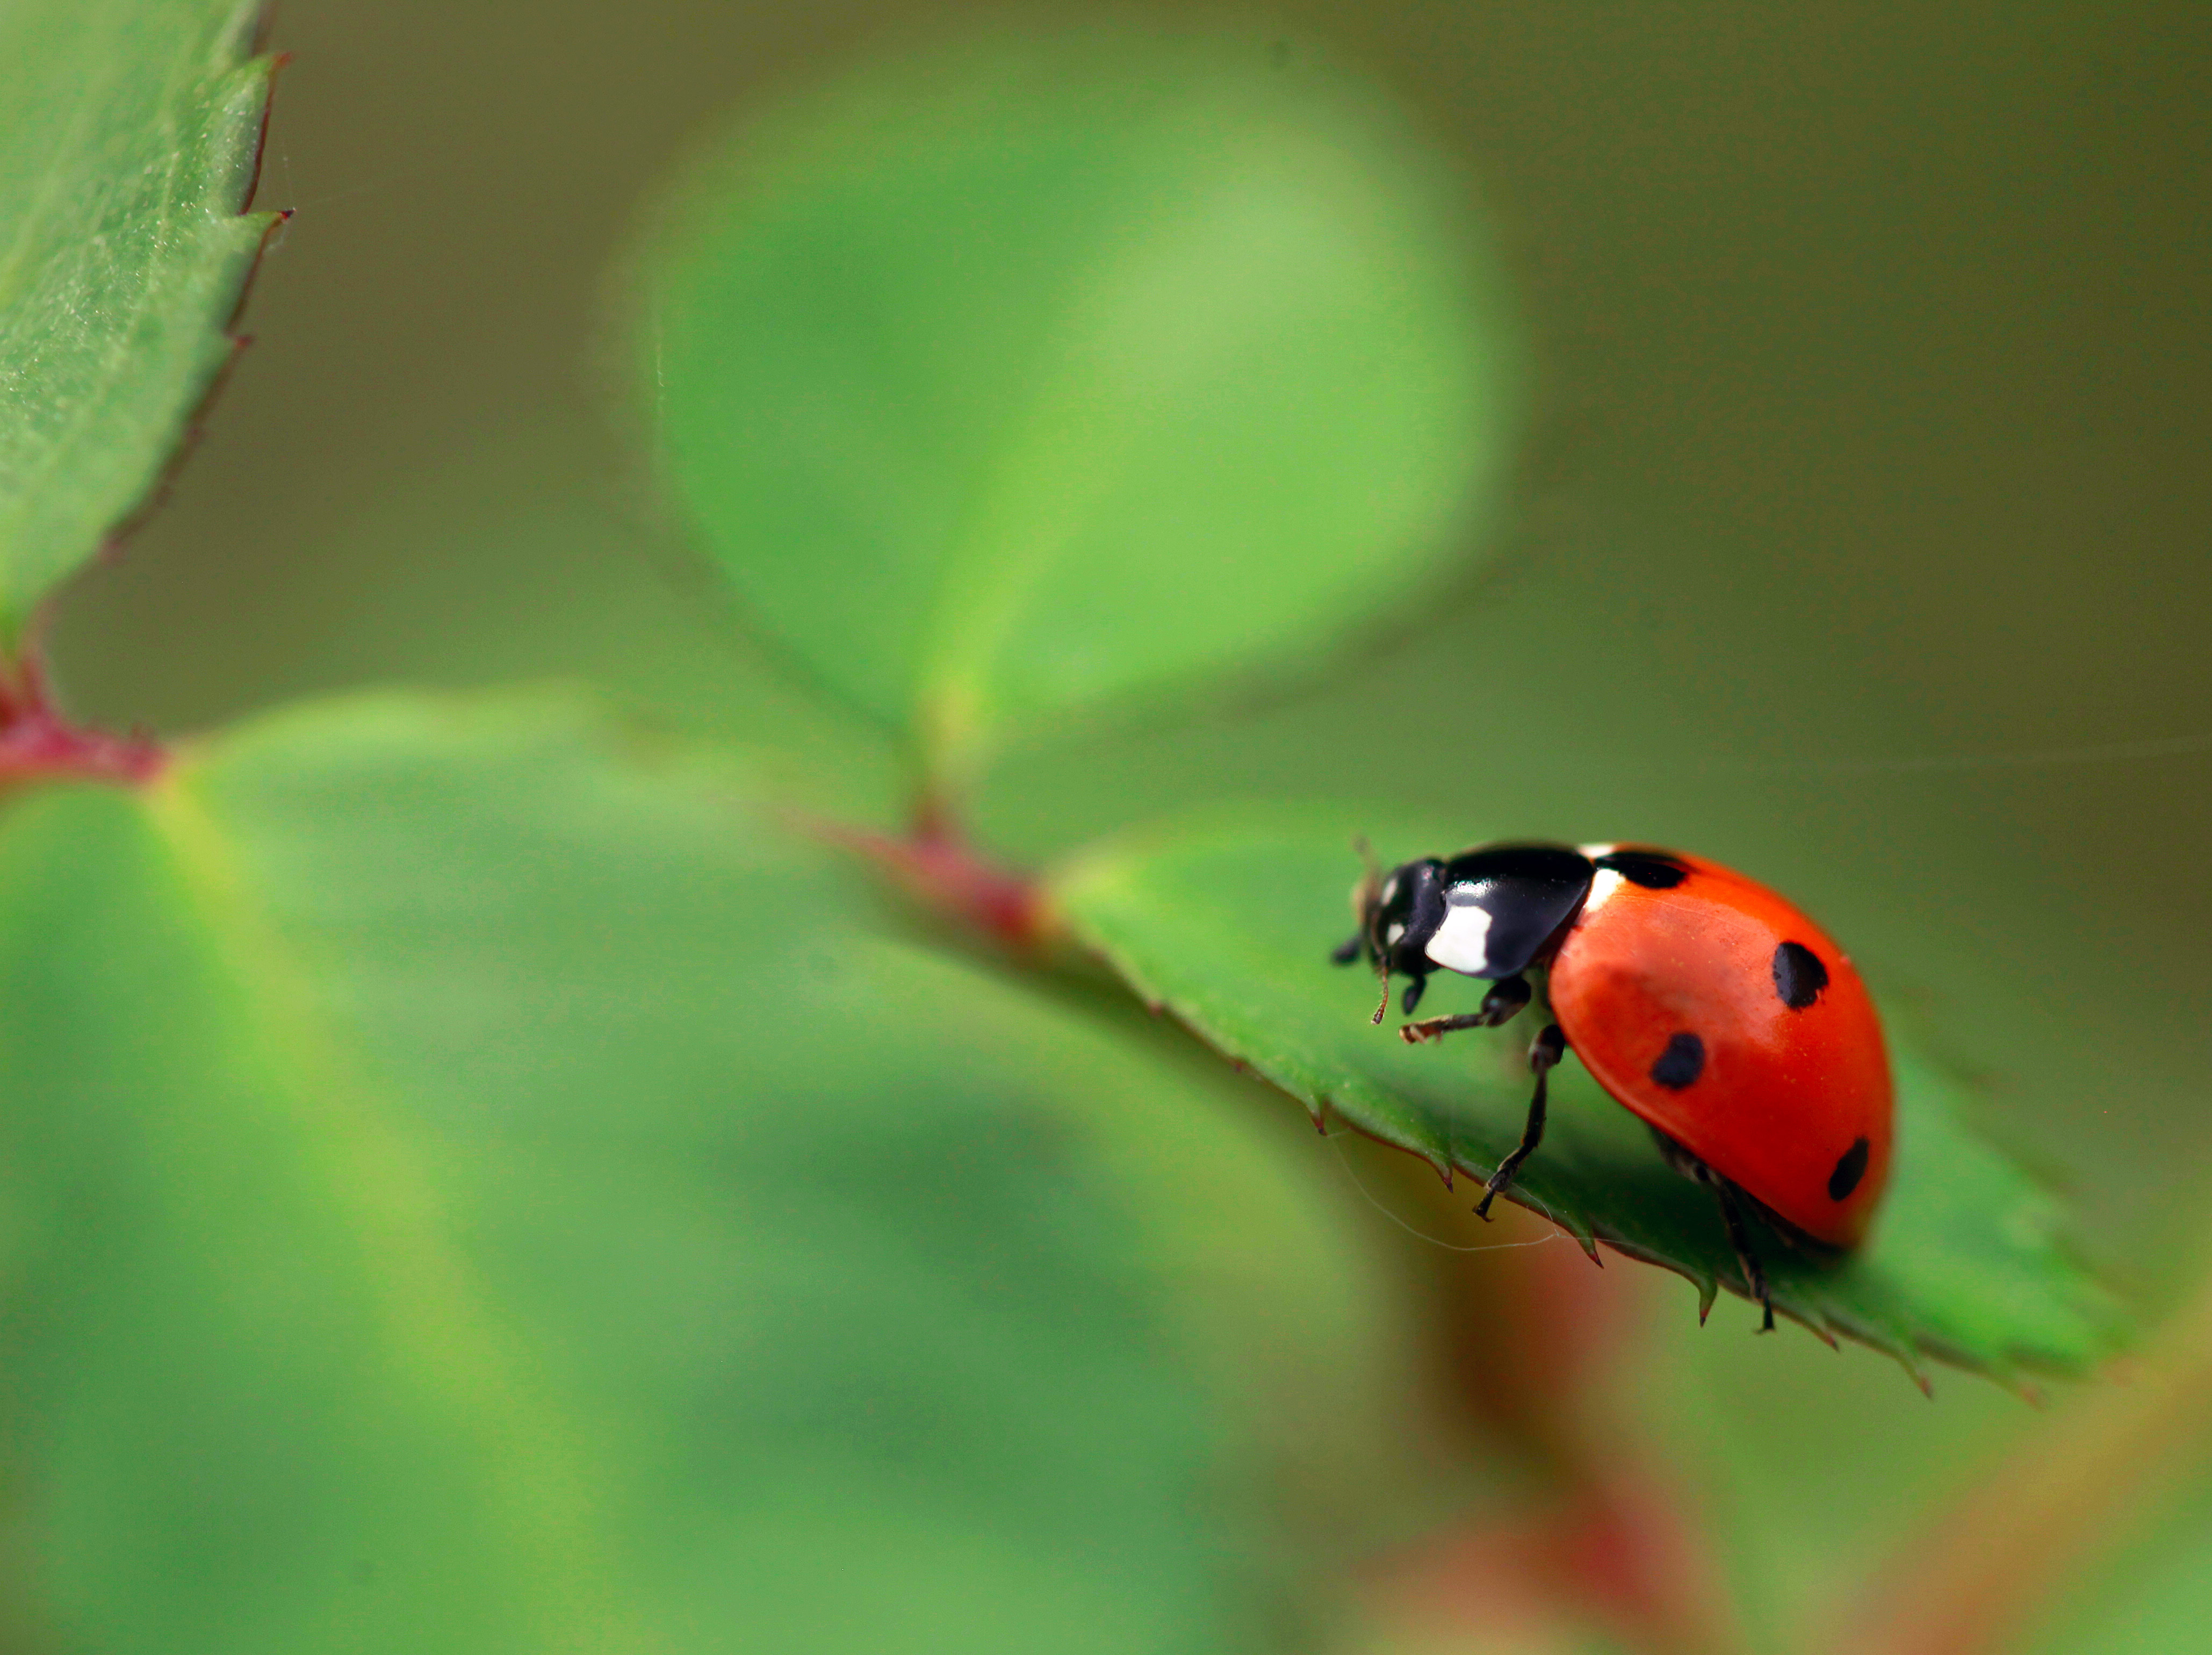 Insect ladybug, insect, plant, shell